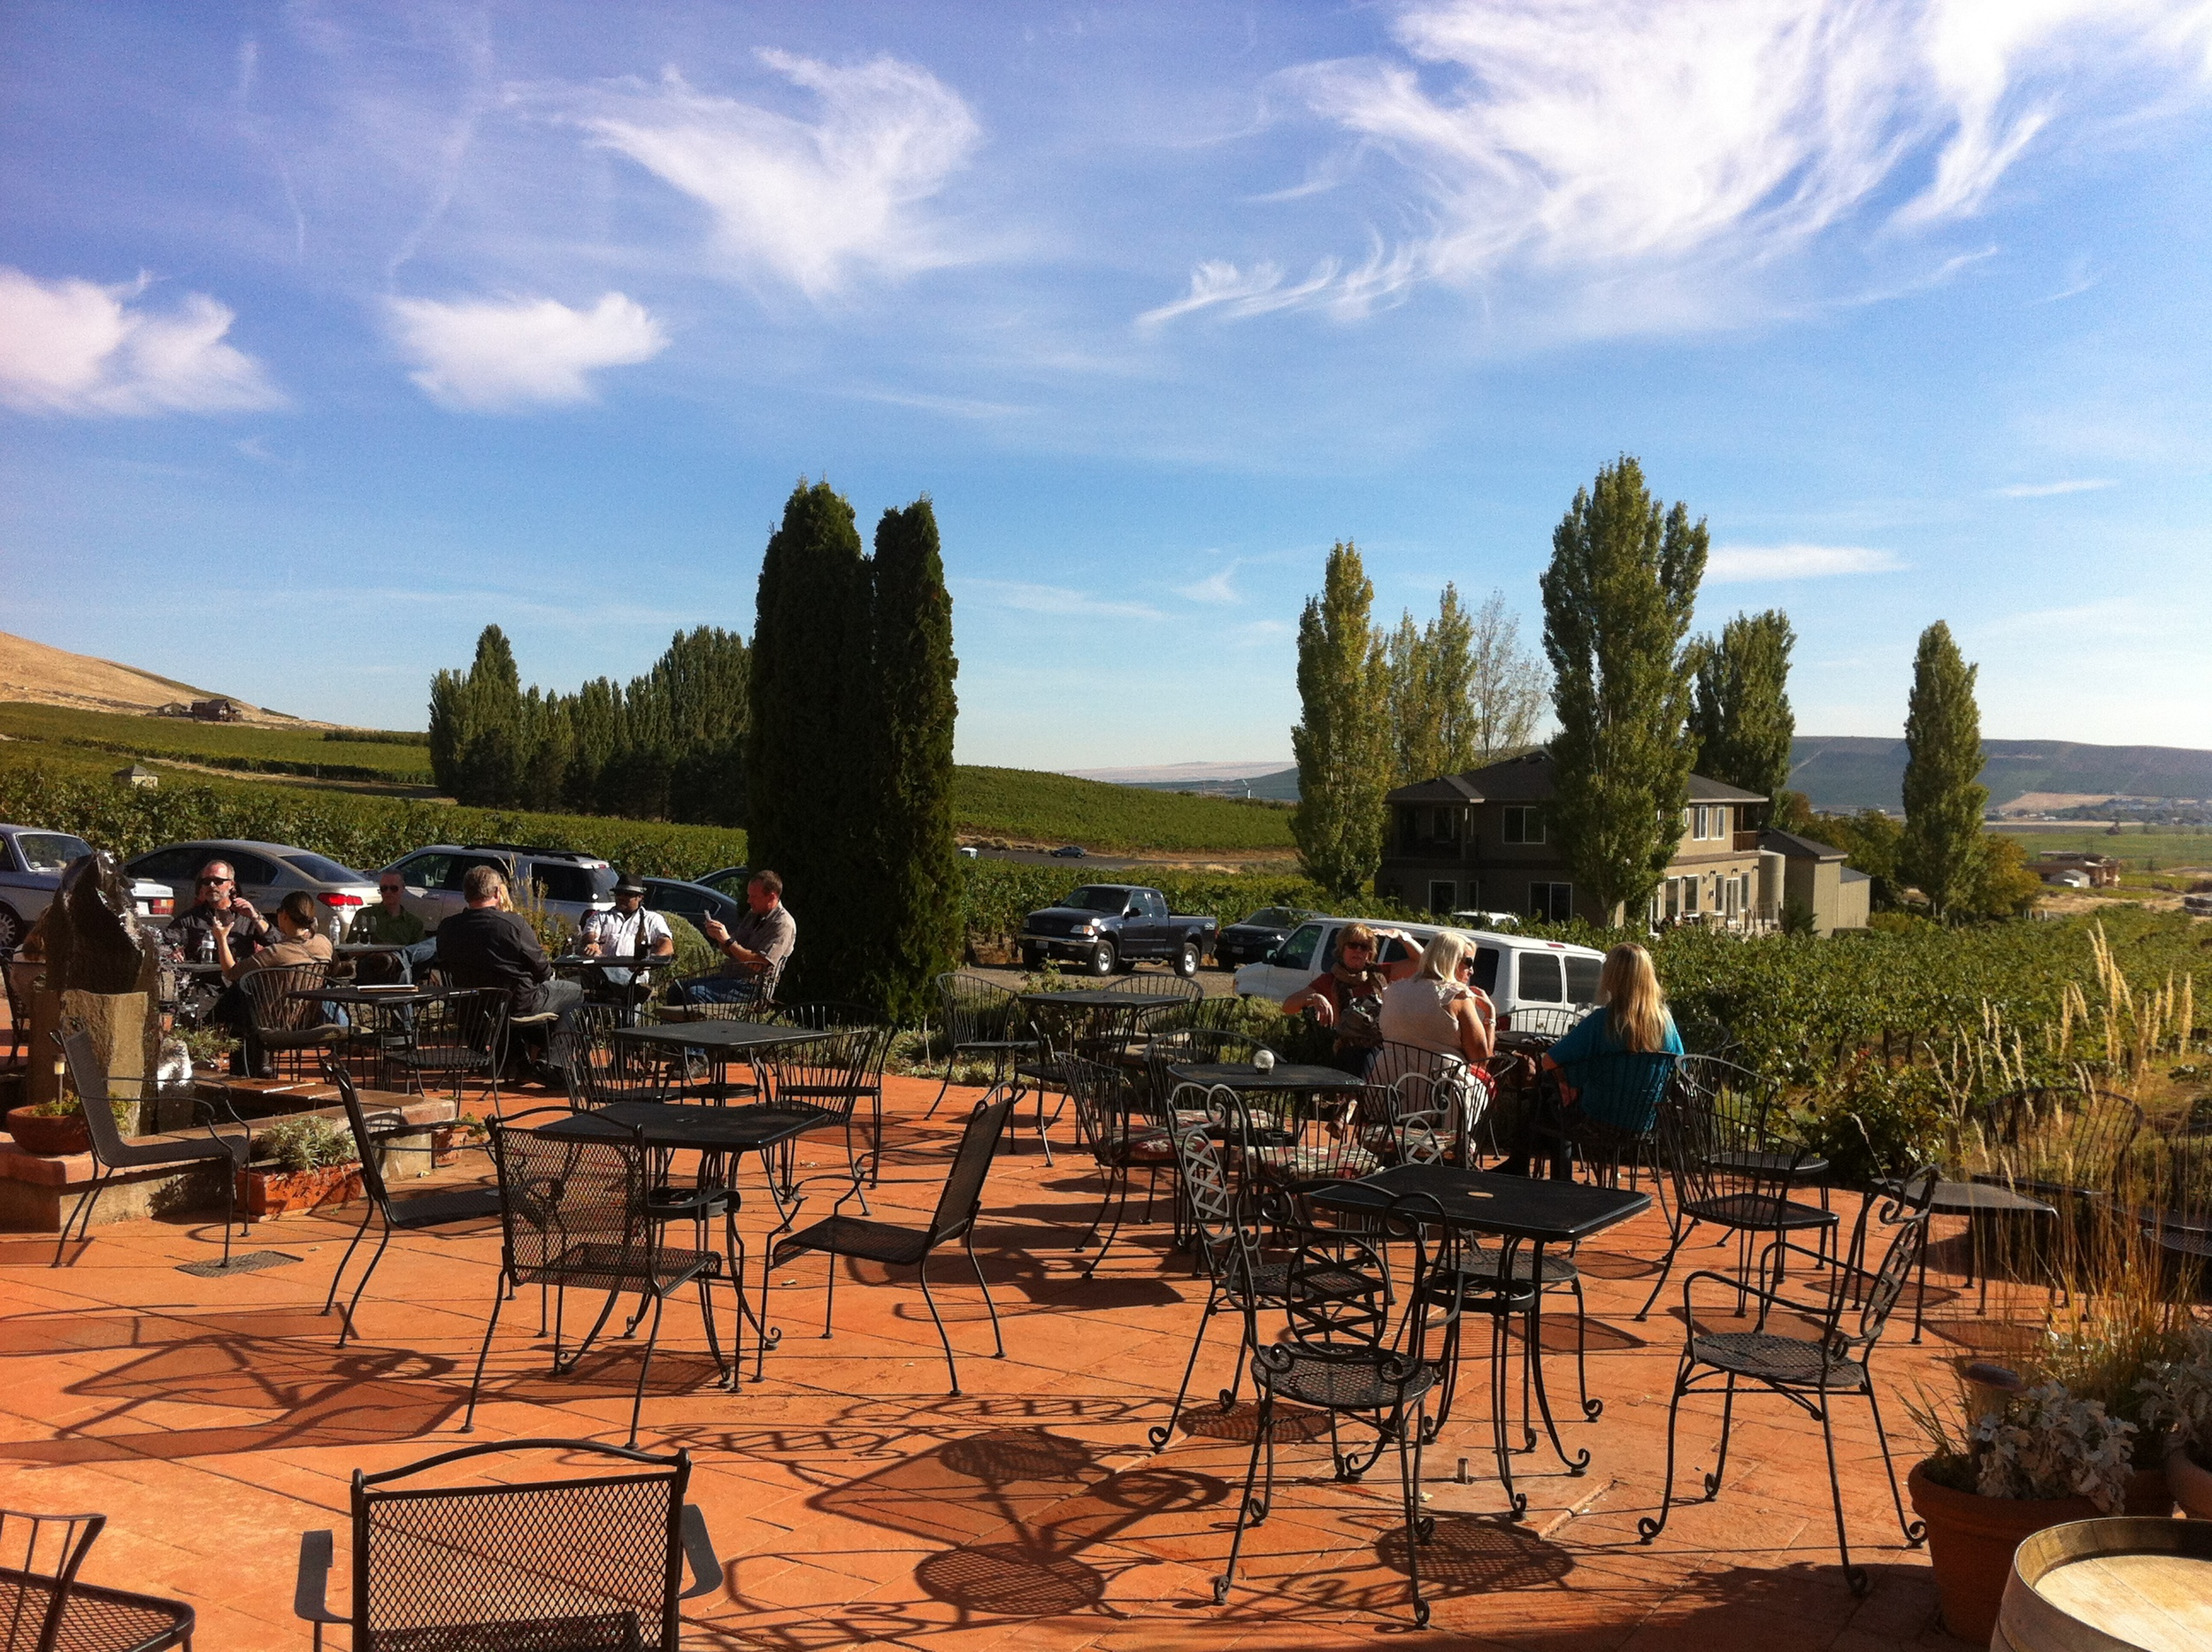 This is the patio at the Tapteil Vineyard Winery with one of the cottages below that you can rent.